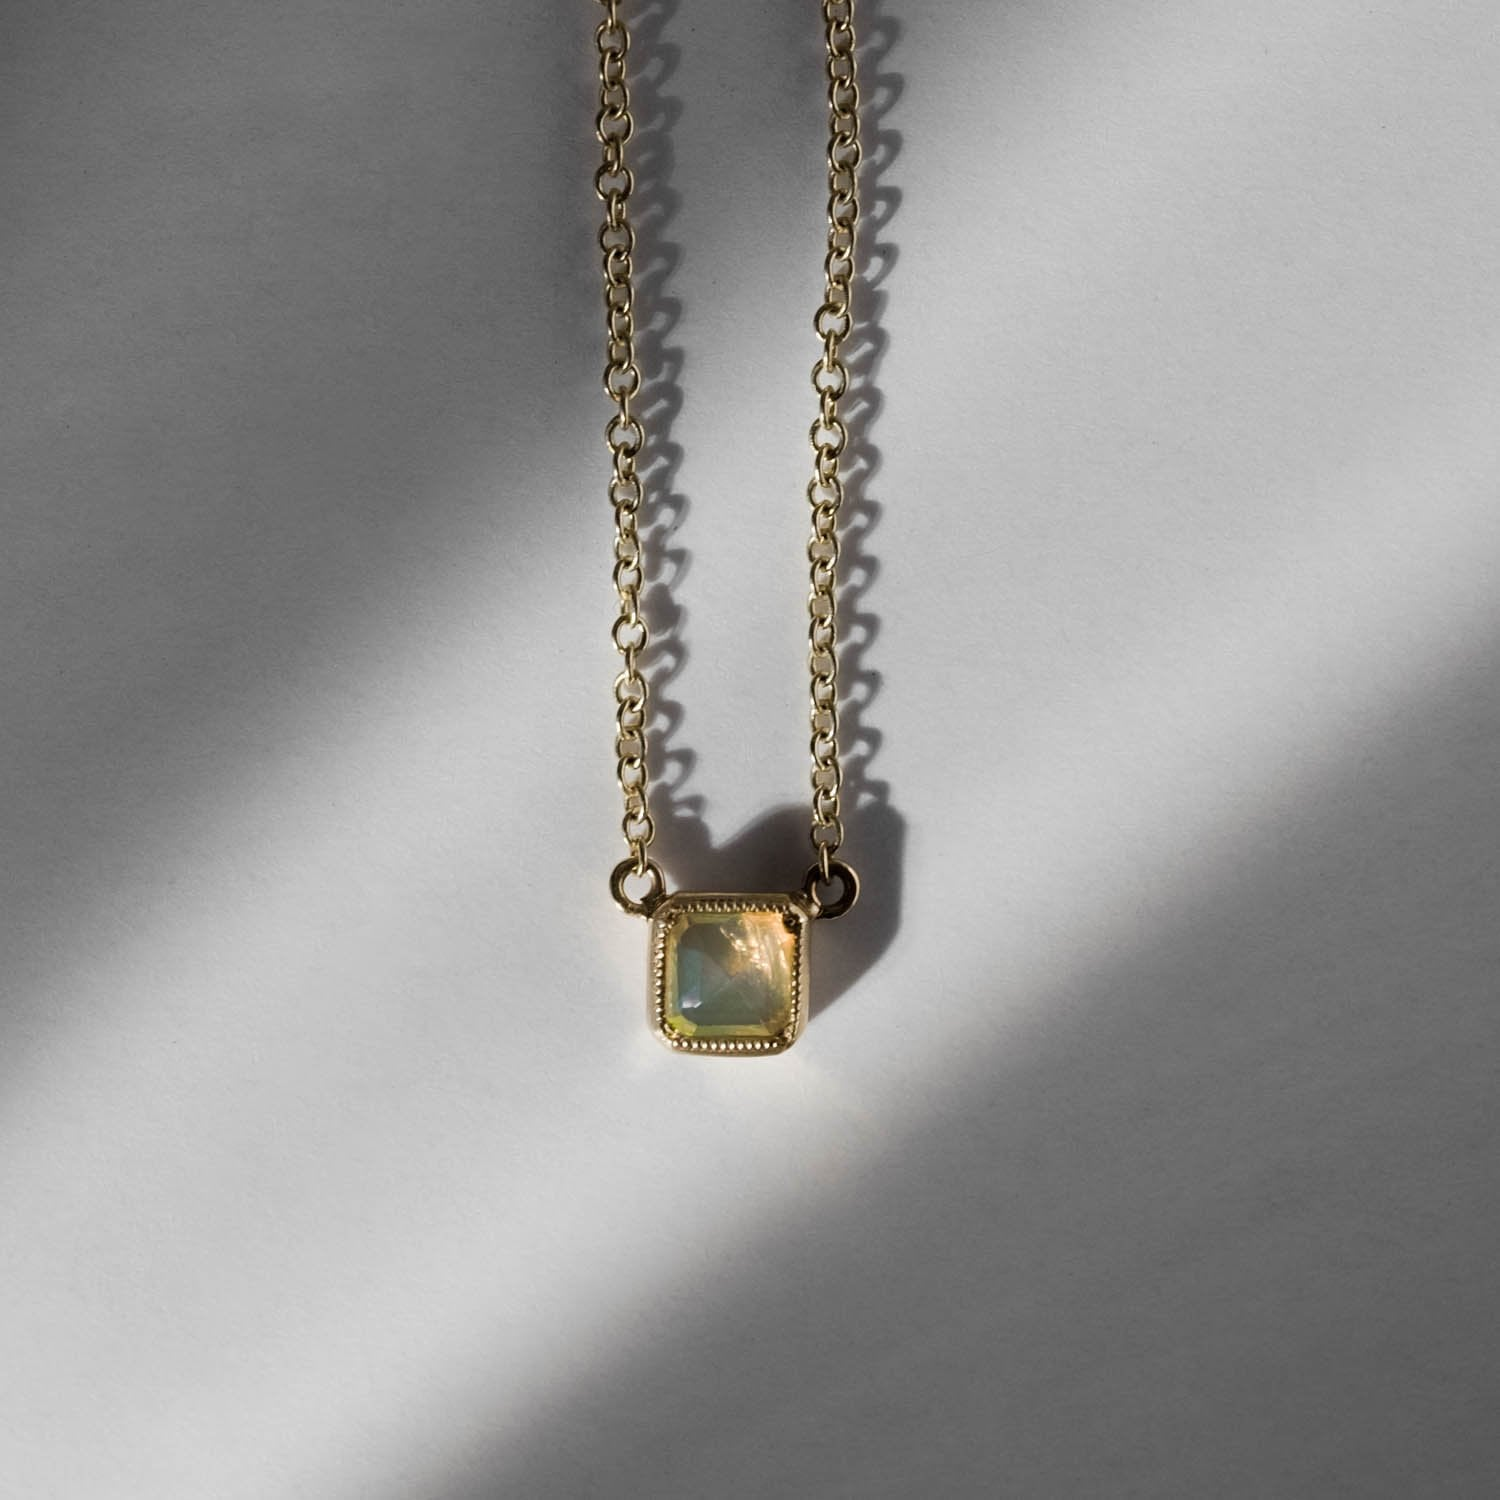 Petite Square Bezel Opal Necklace